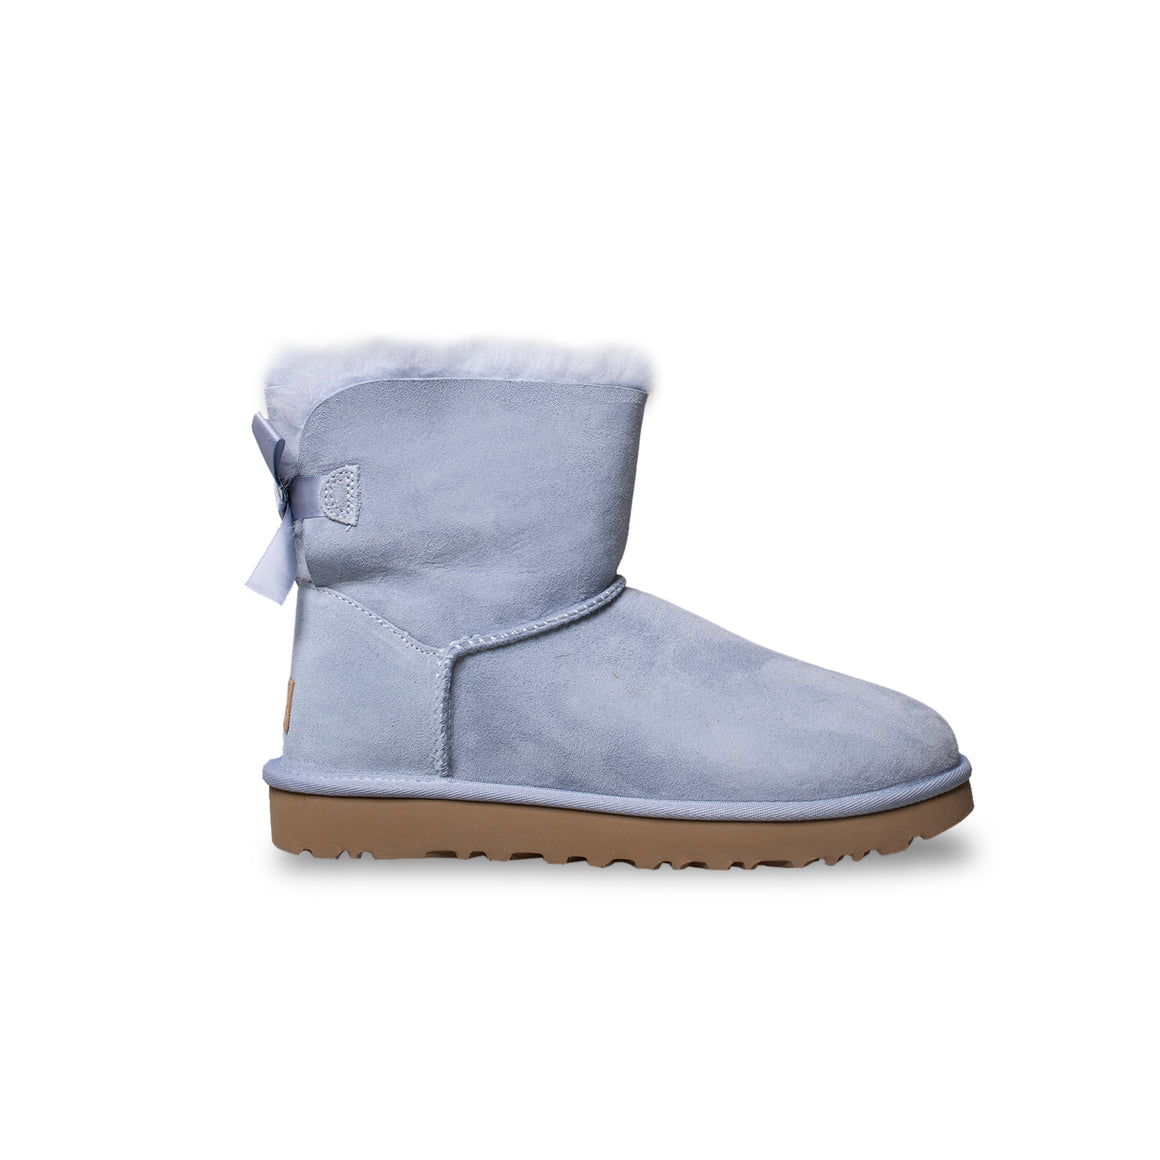 UGG Mini Bailey Bow II Fresh Air Boots - Women's